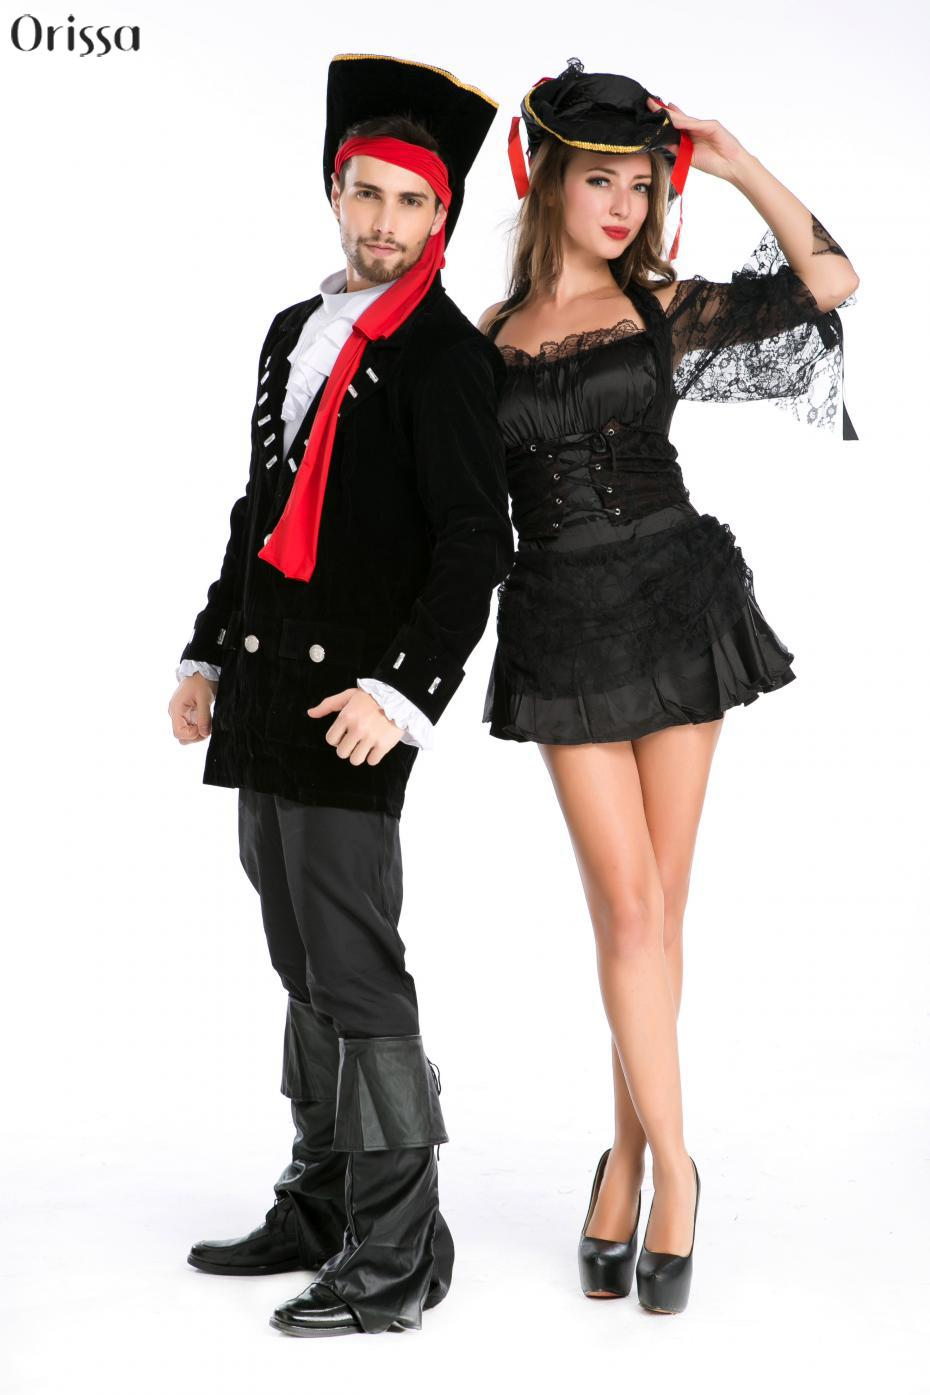 black sexy pirate costumes halloween costumes for women lace women adult pirate dress women couple pirate cosplay costumes in sexy costumes from novelty